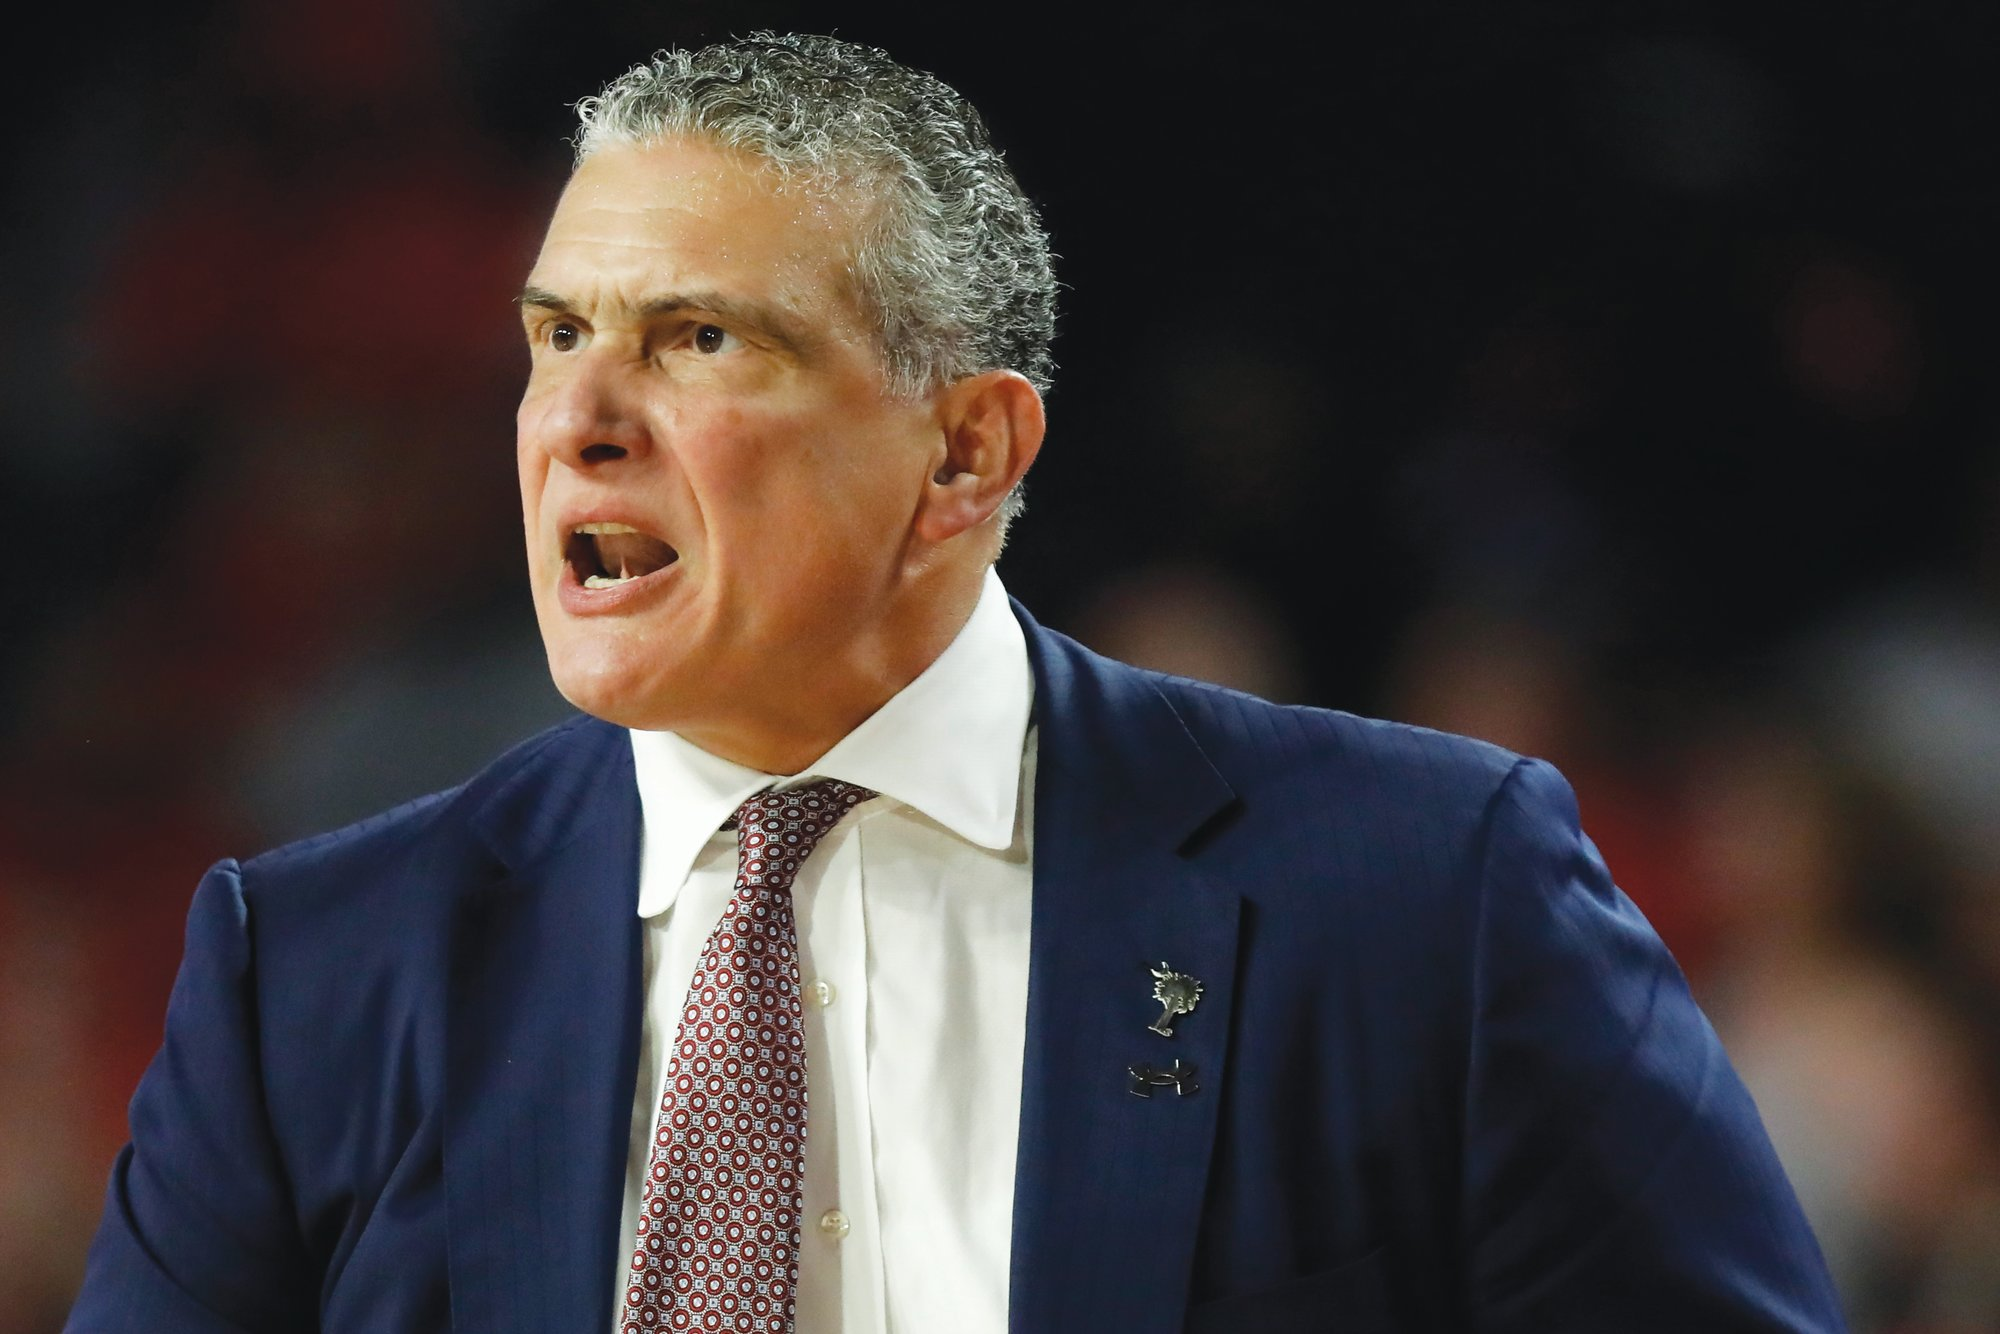 South Carolina coach Frank Martin will take a pay cut for the upcoming fiscal year.